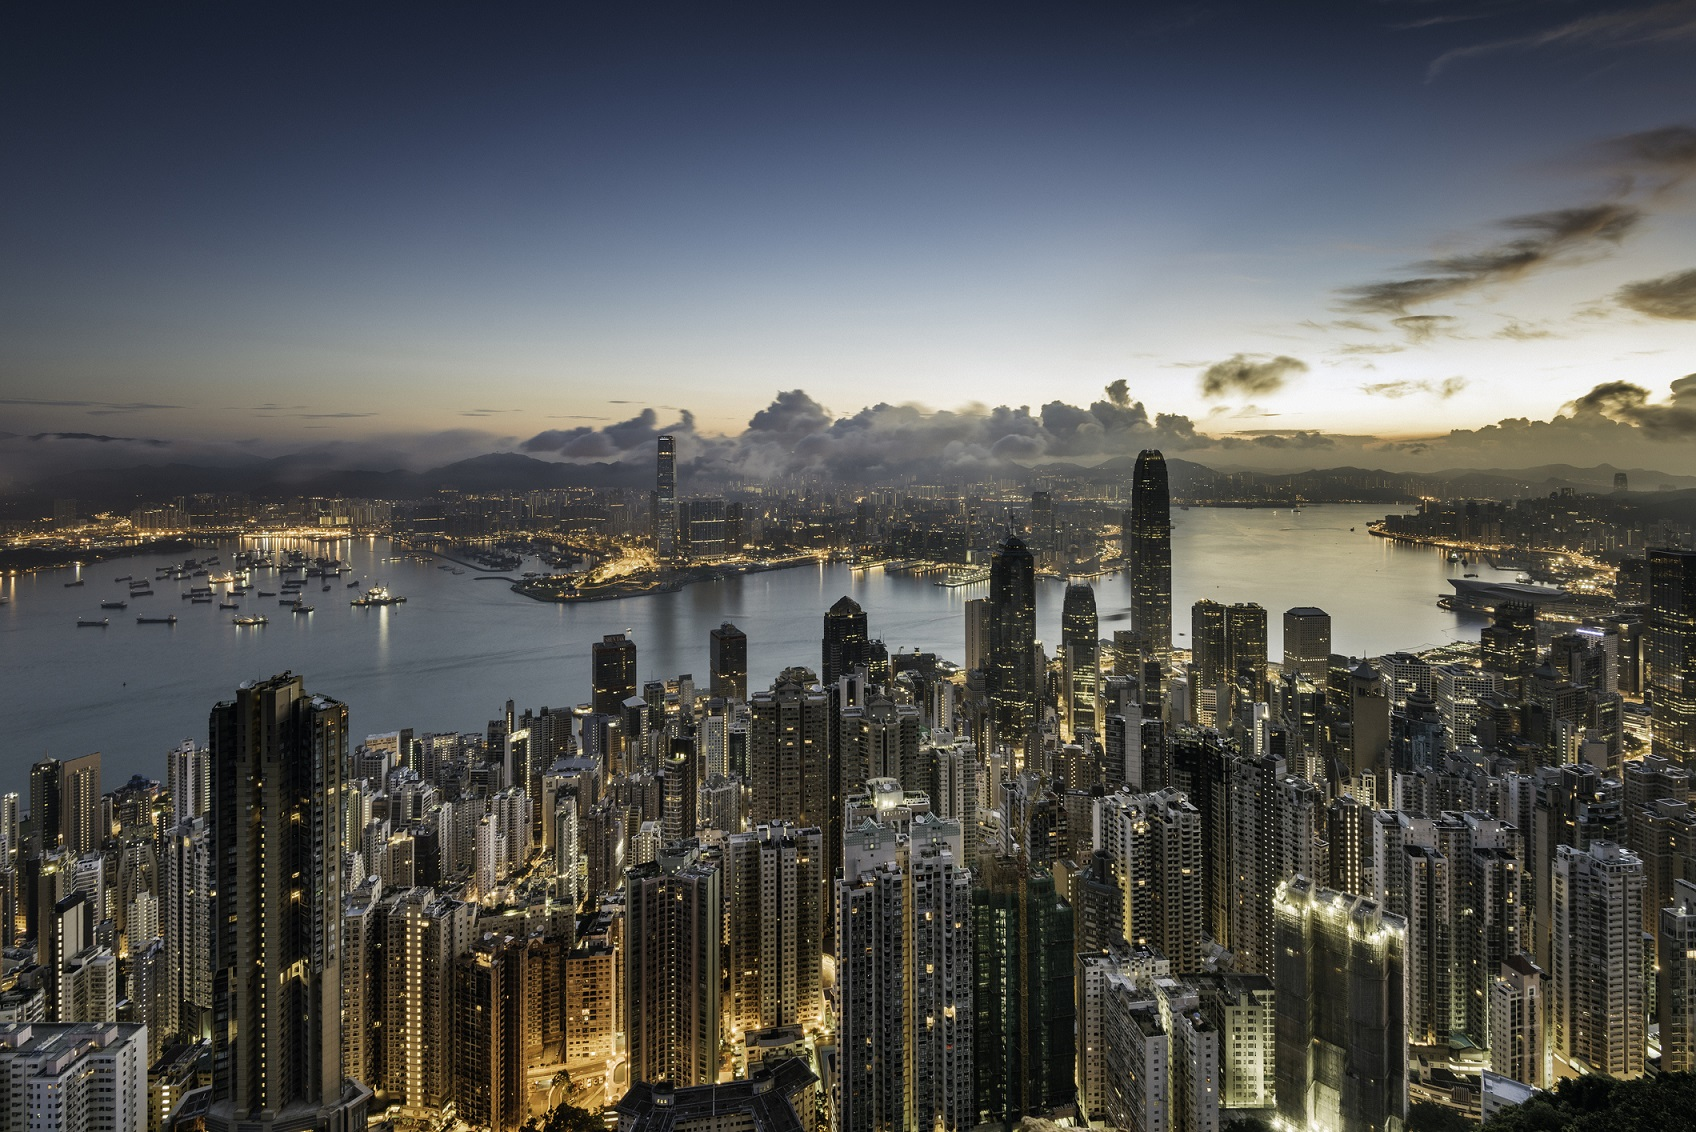 When Hong Kong Ceases to Be Hong Kong